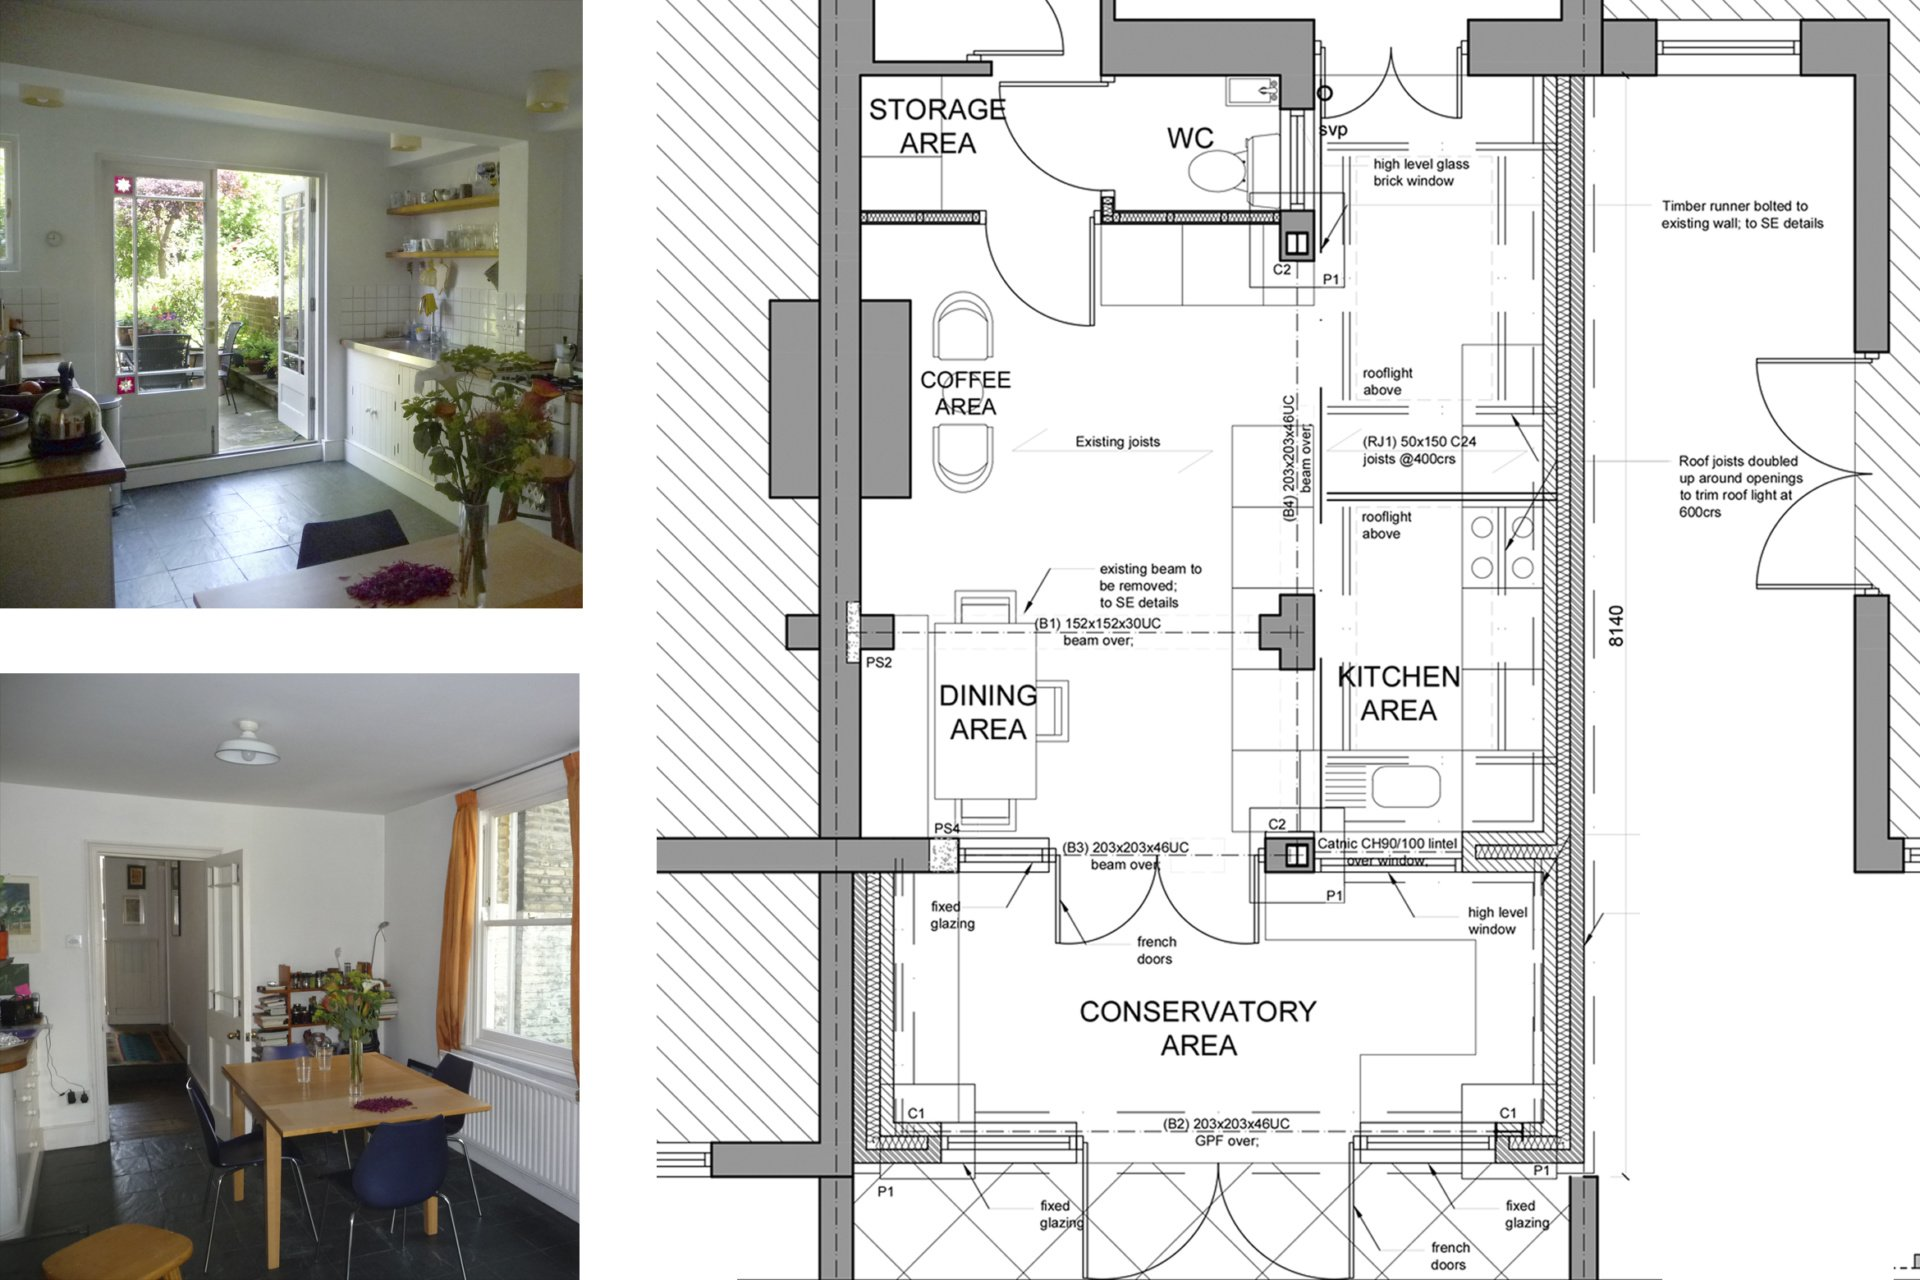 Architect designed kitchen and roof house extension Arsenal Islington N5 Ground floor 1 Arsenal, Islington N5 | Kitchen and roof house extension